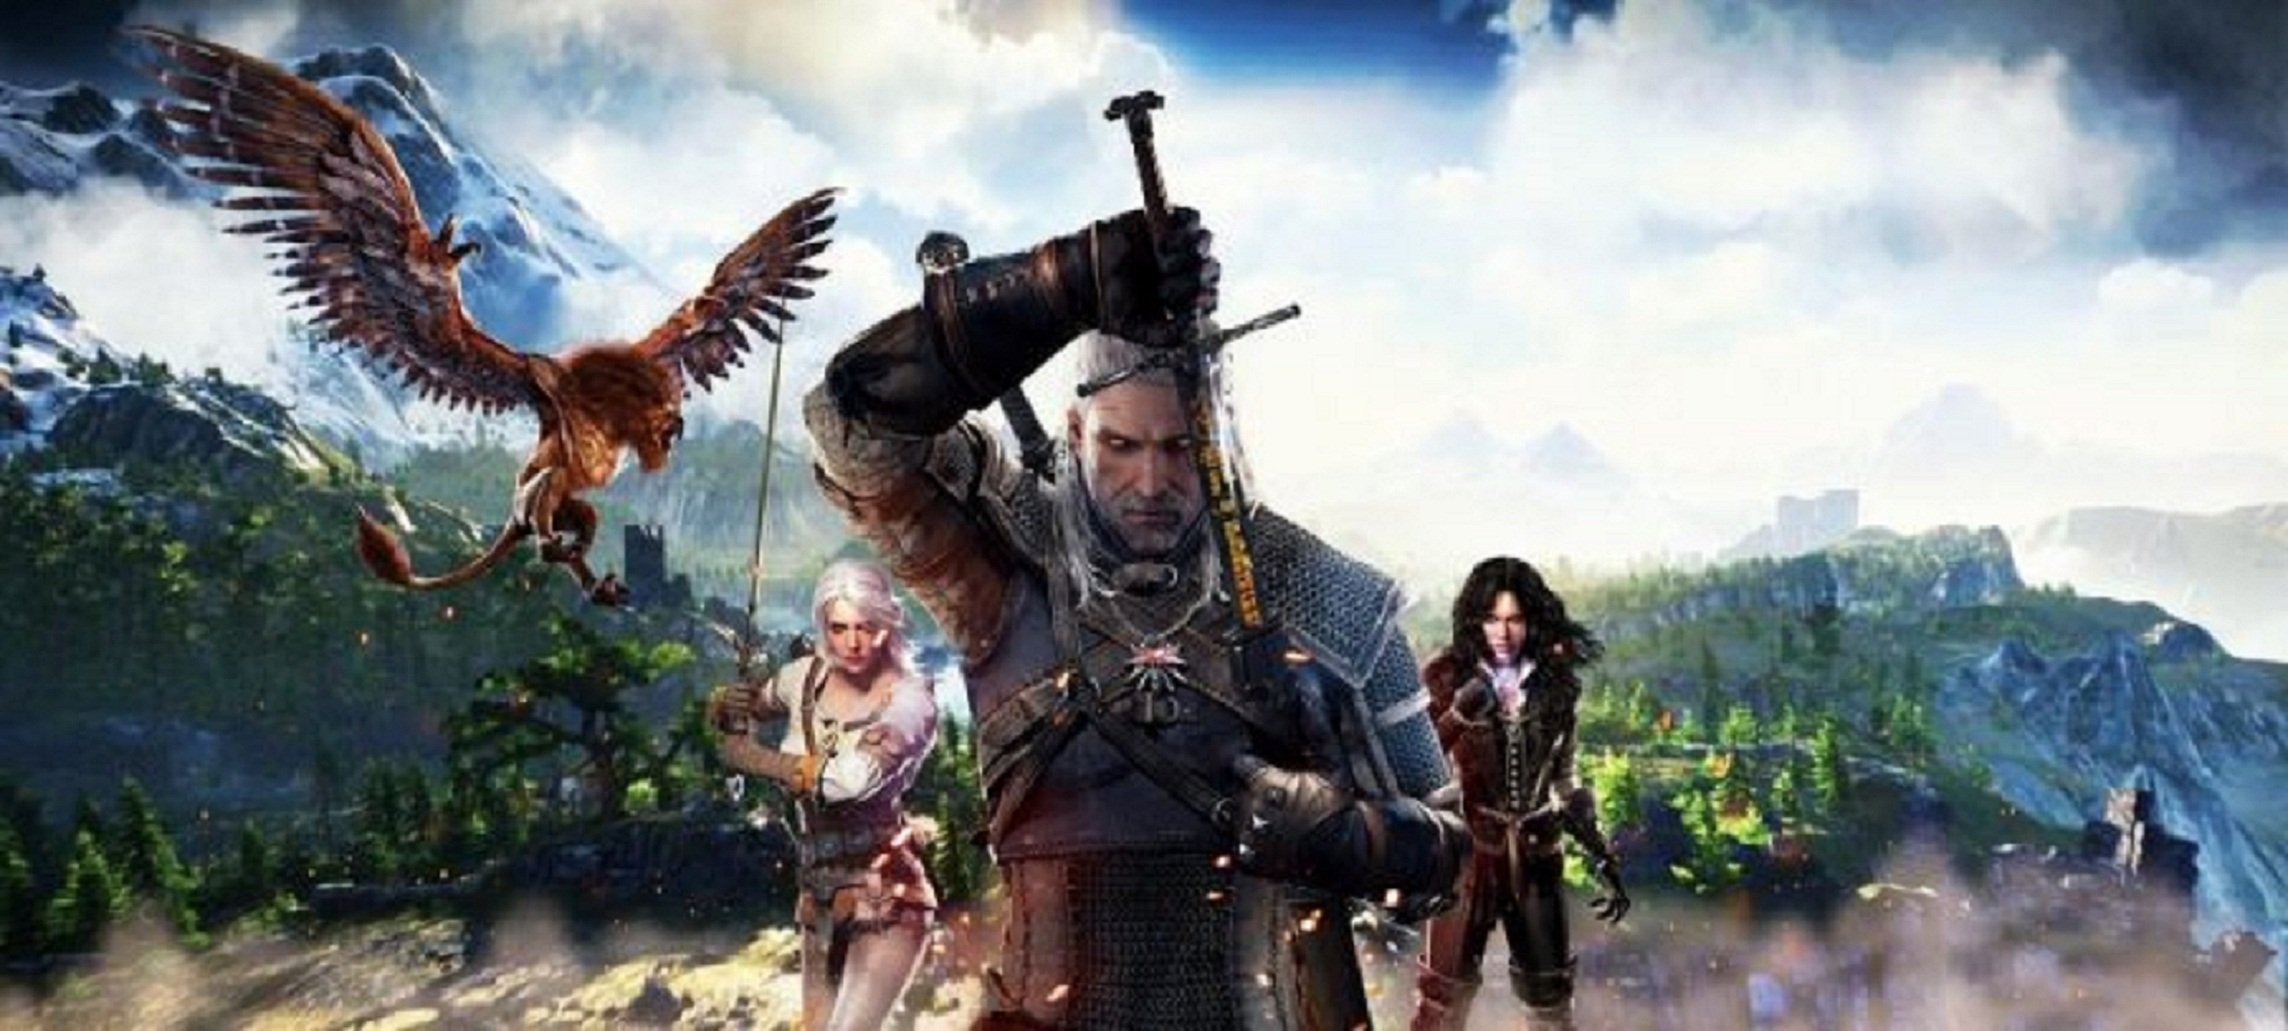 CD Projekt Offers The Witcher: Enhanced Edition For Free To All GOG Galaxy Users